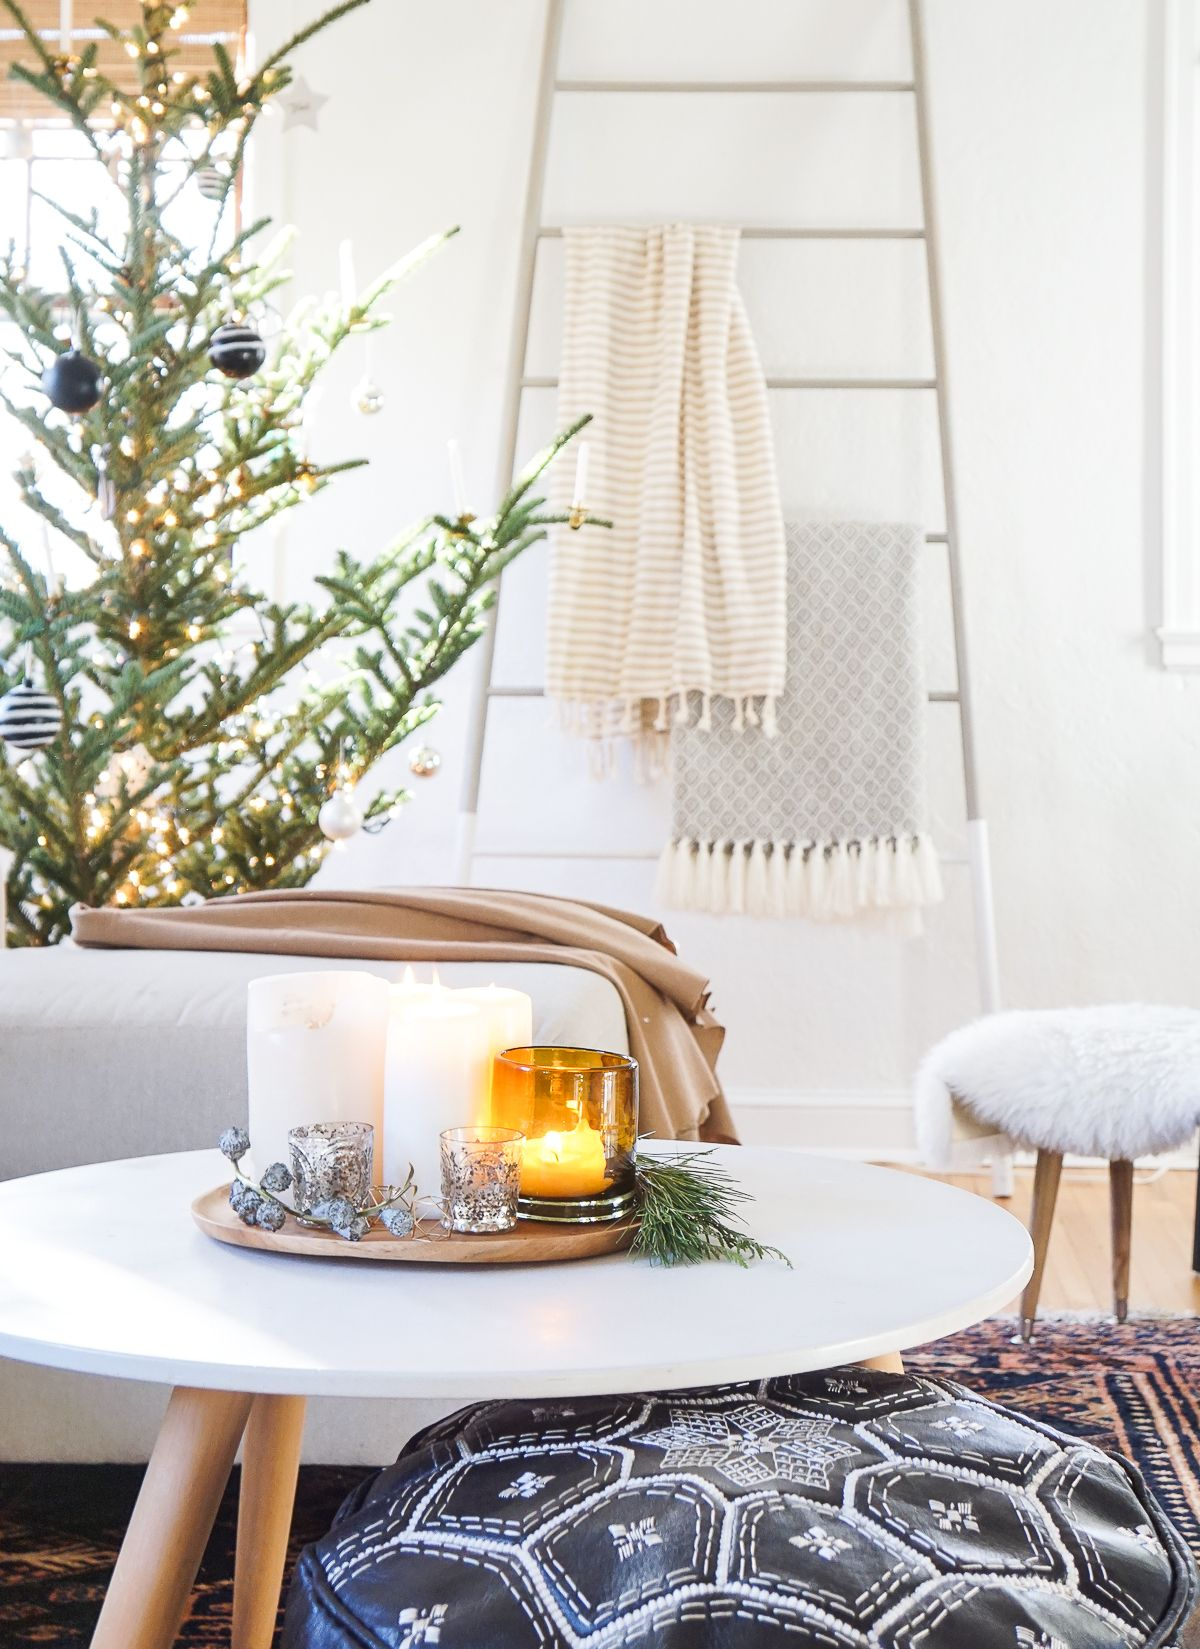 Take a look around my home all dressed up for the Holidays, and find out where we draw festive inspiration from! (Holiday home tour)